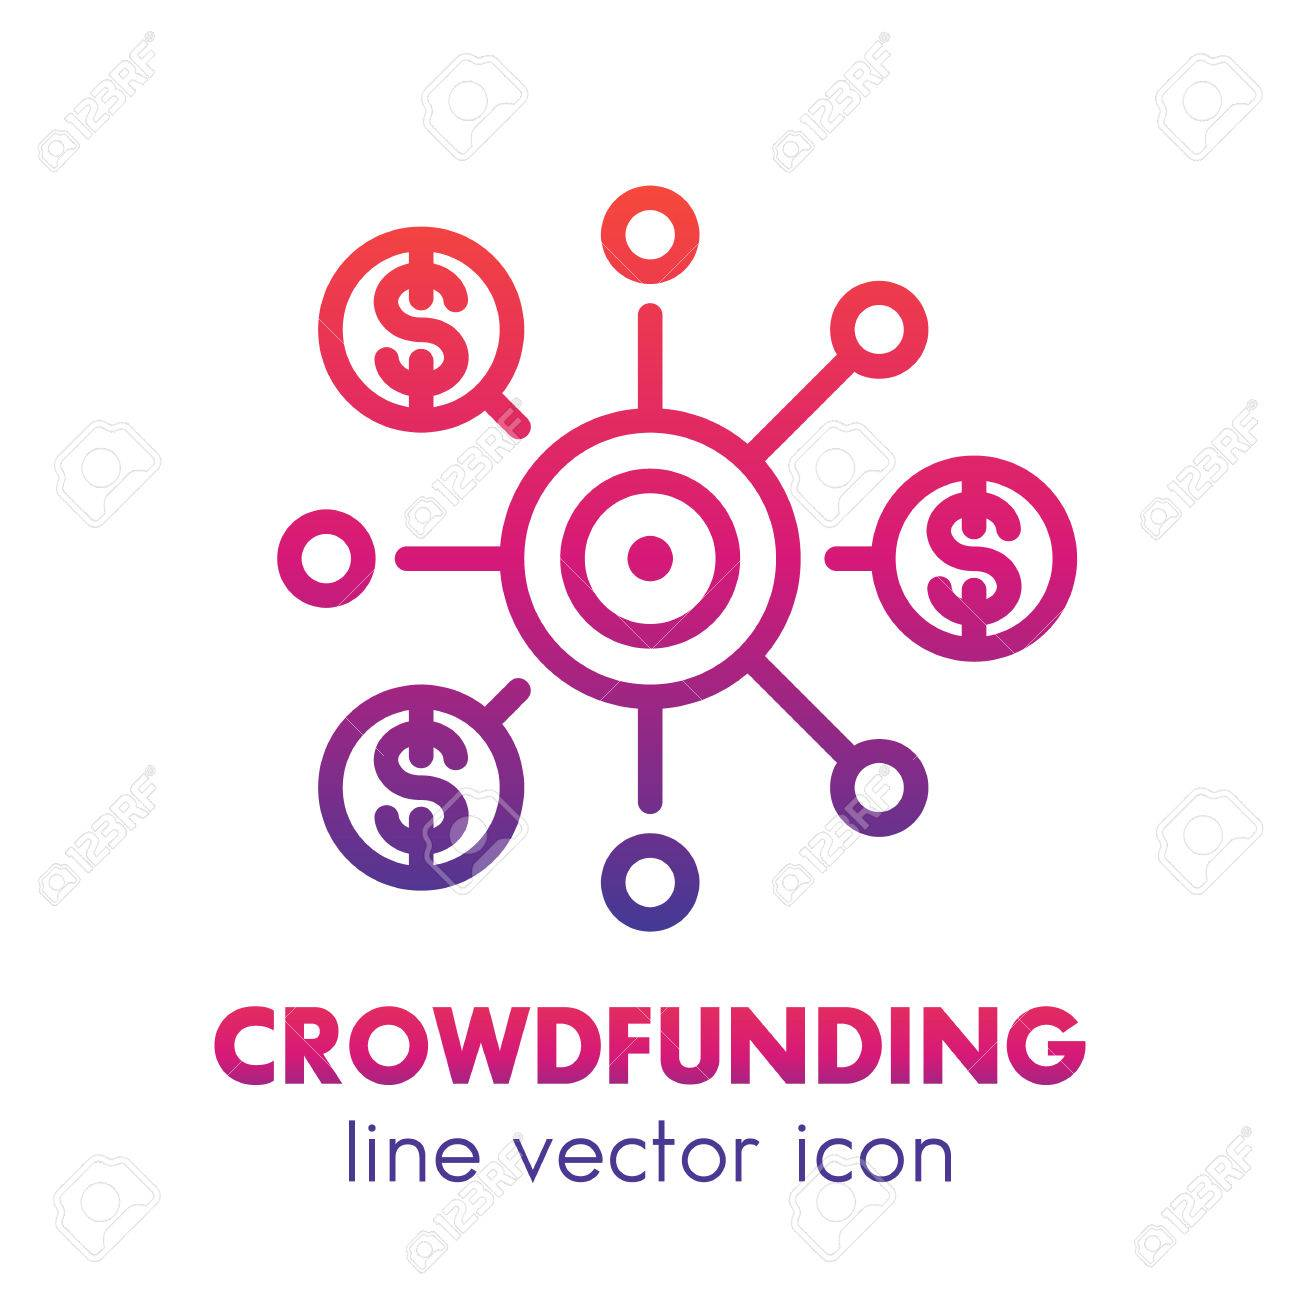 crowdfunding line icon over white crowdsourcing raising funding